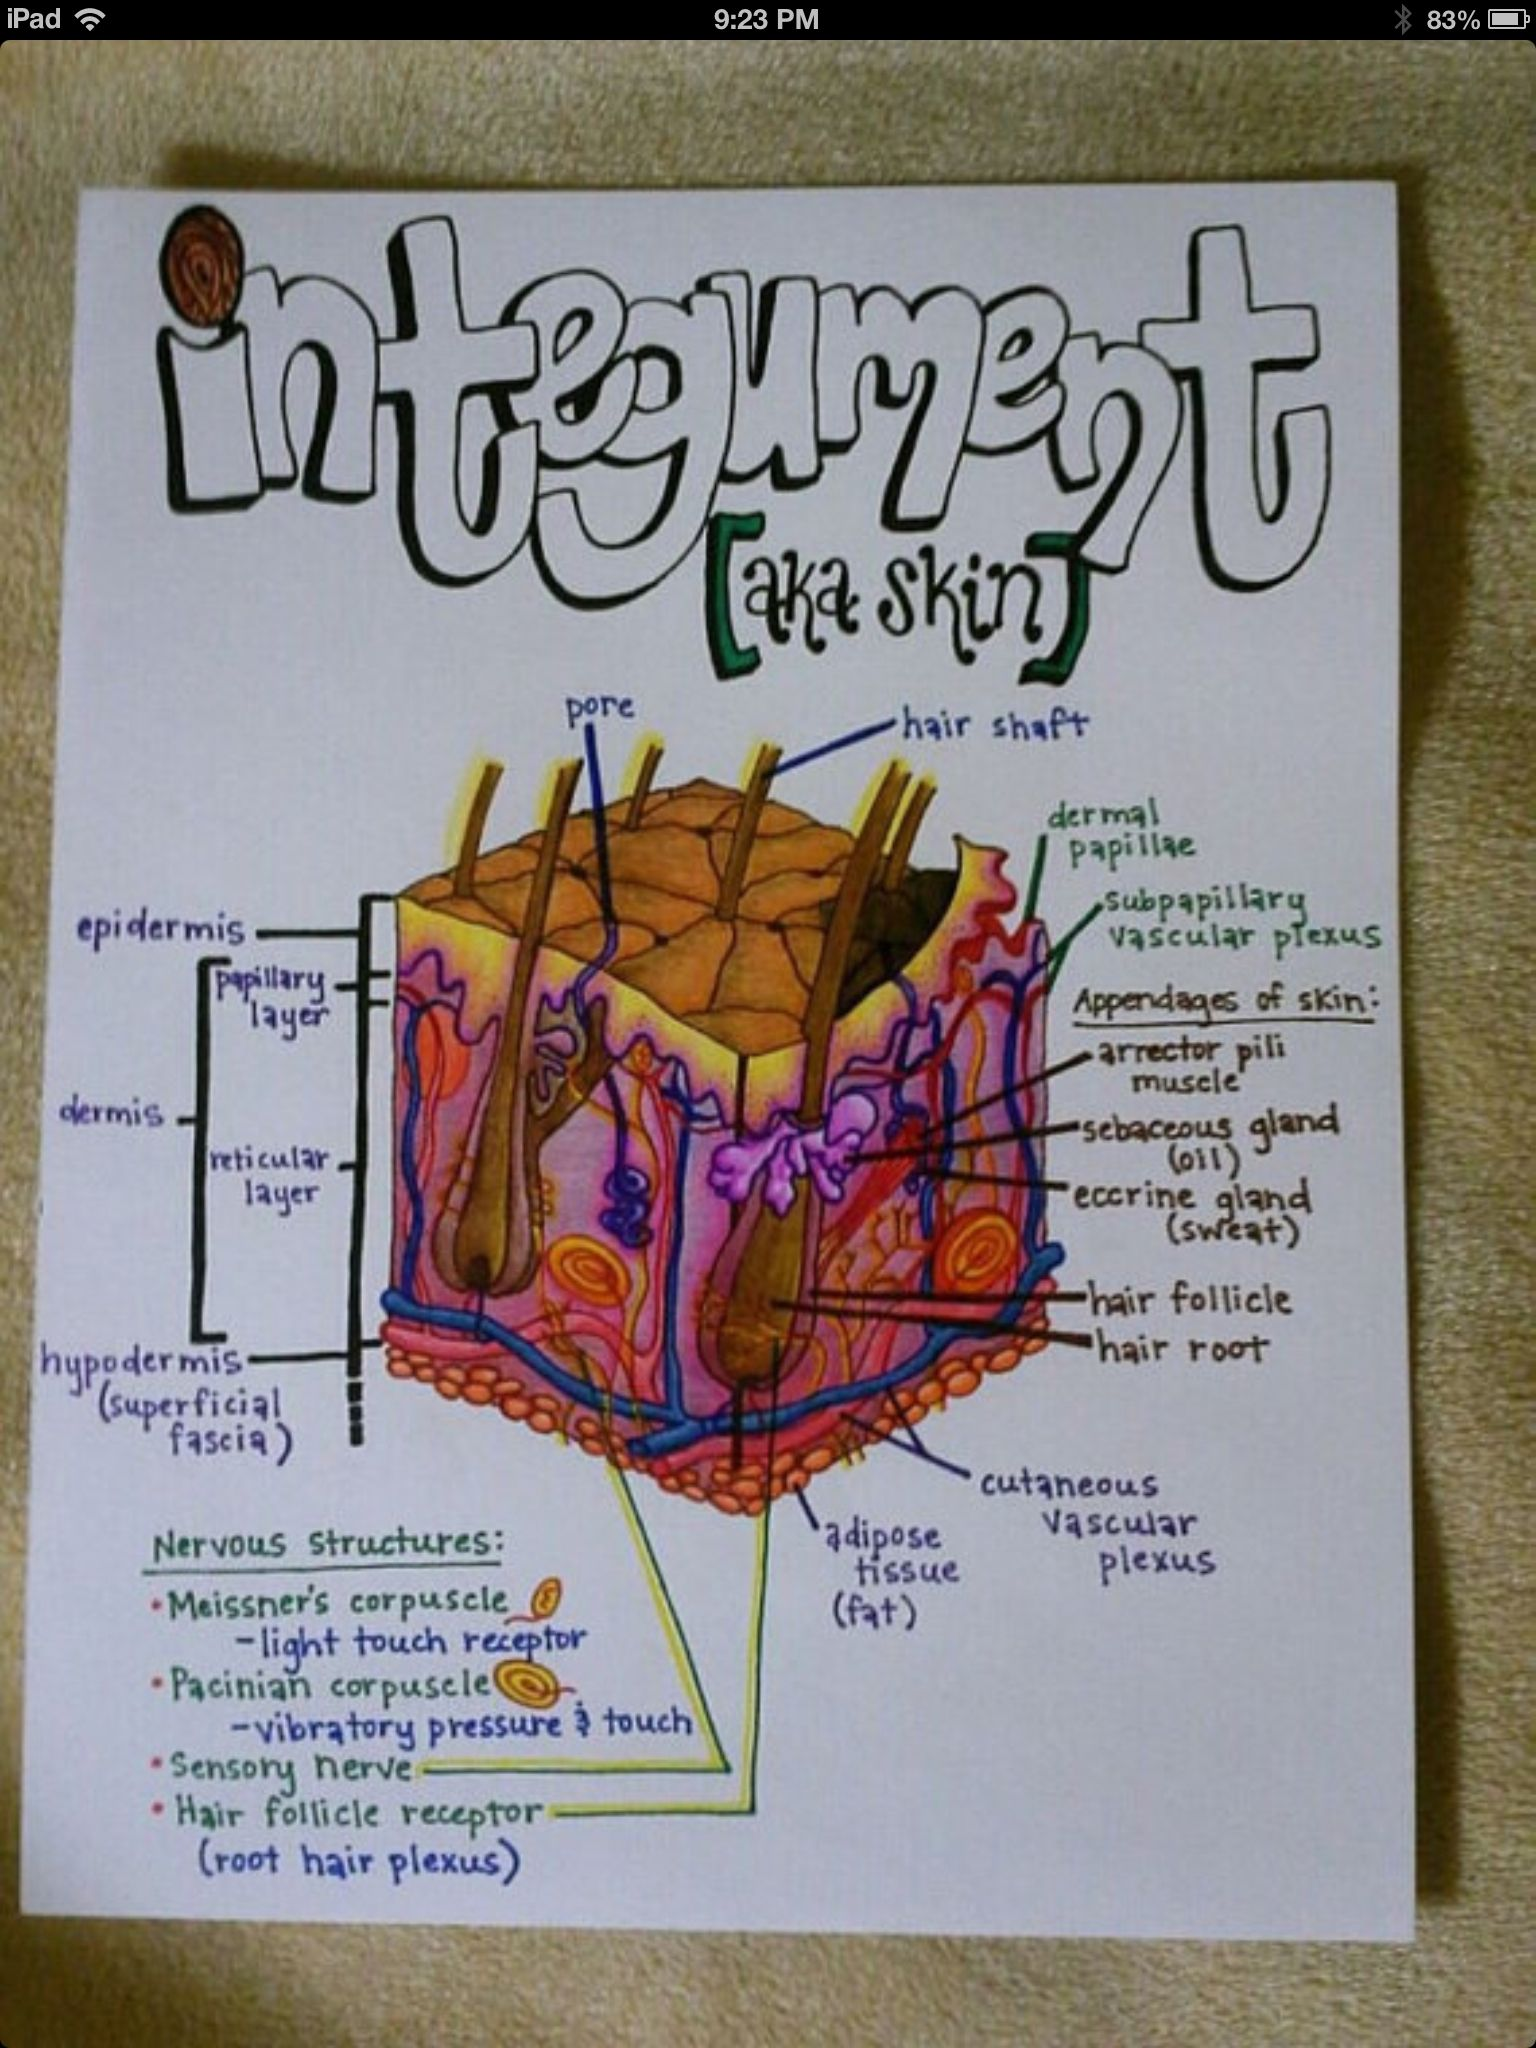 integumentary system notes Integumentarysystemnotesreviewdocx integumentary system 1 what is the function of the integumentary system 2 what are the structures of the integumentary system.